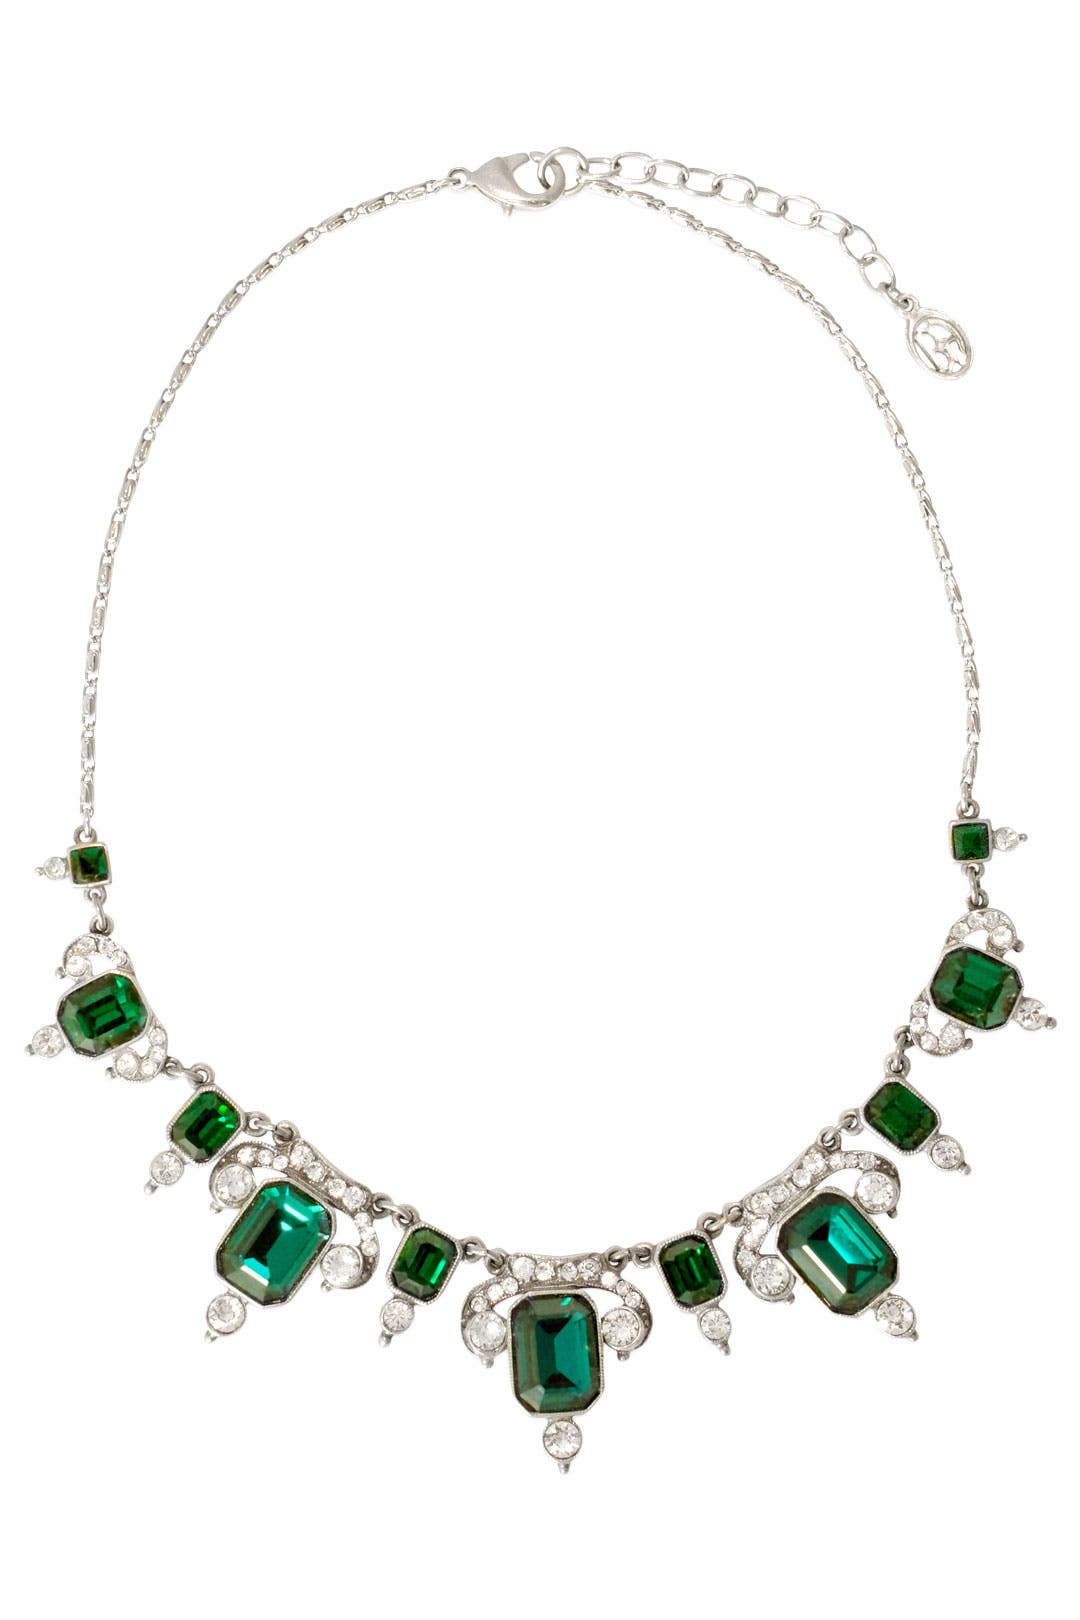 Emerald City Necklace by Ben-Amun